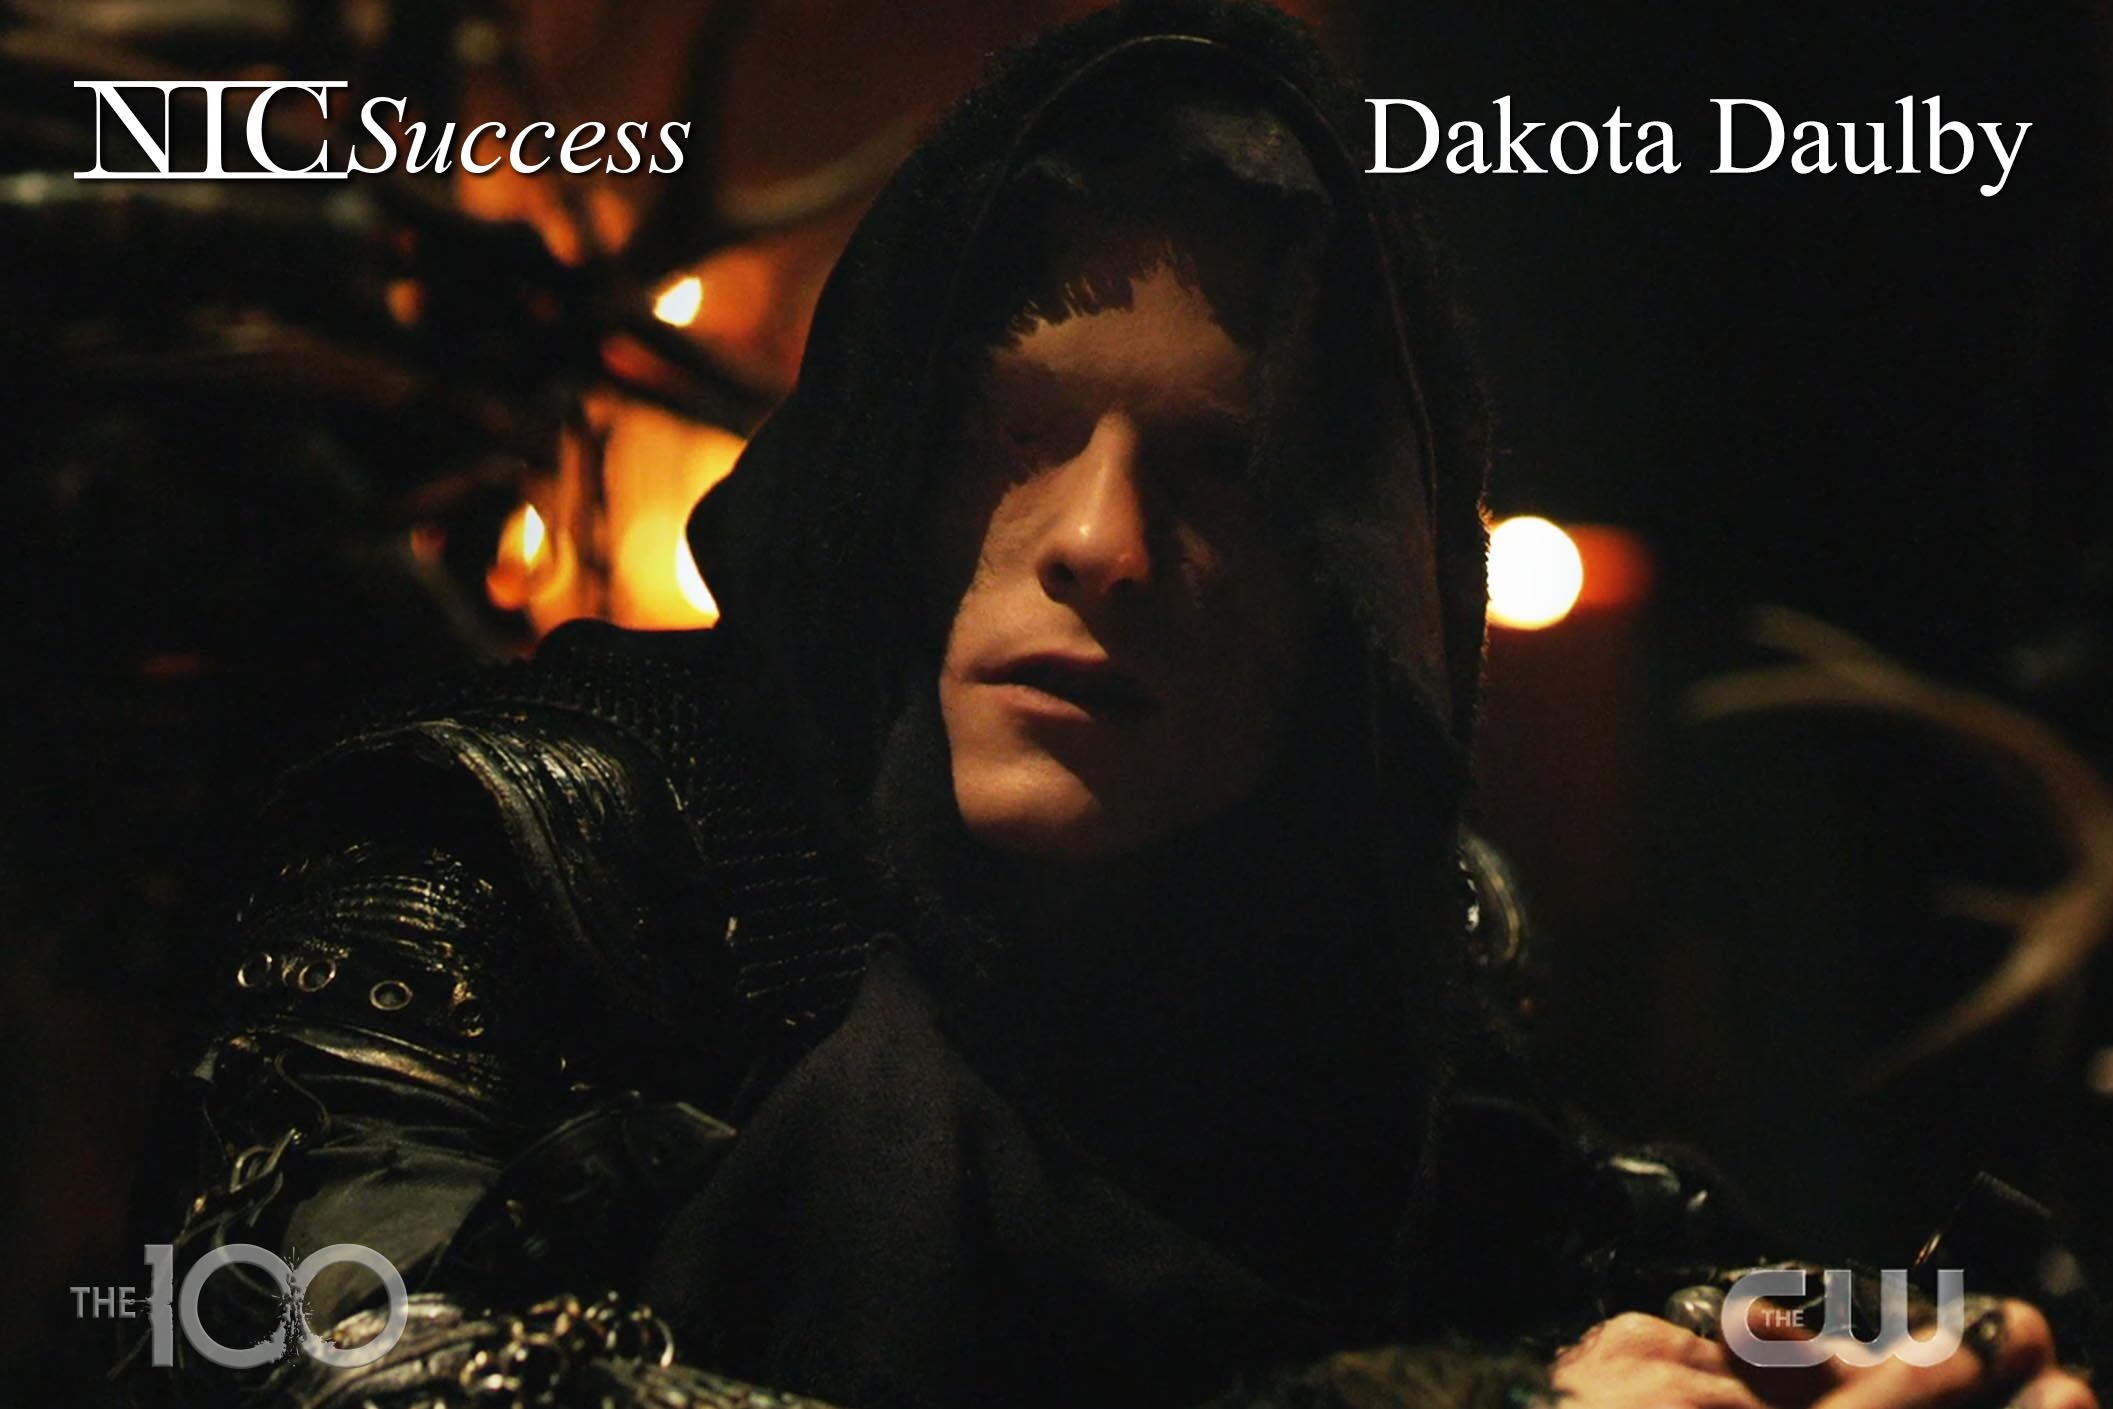 Dakota Daulby is The 100's Sheidheda!